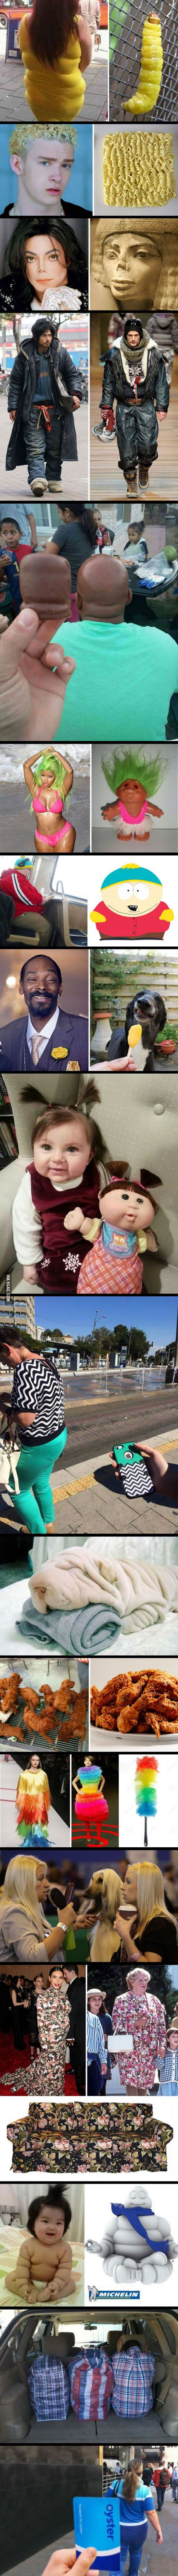 Who wore it better? The little girl with the doll is too cute!